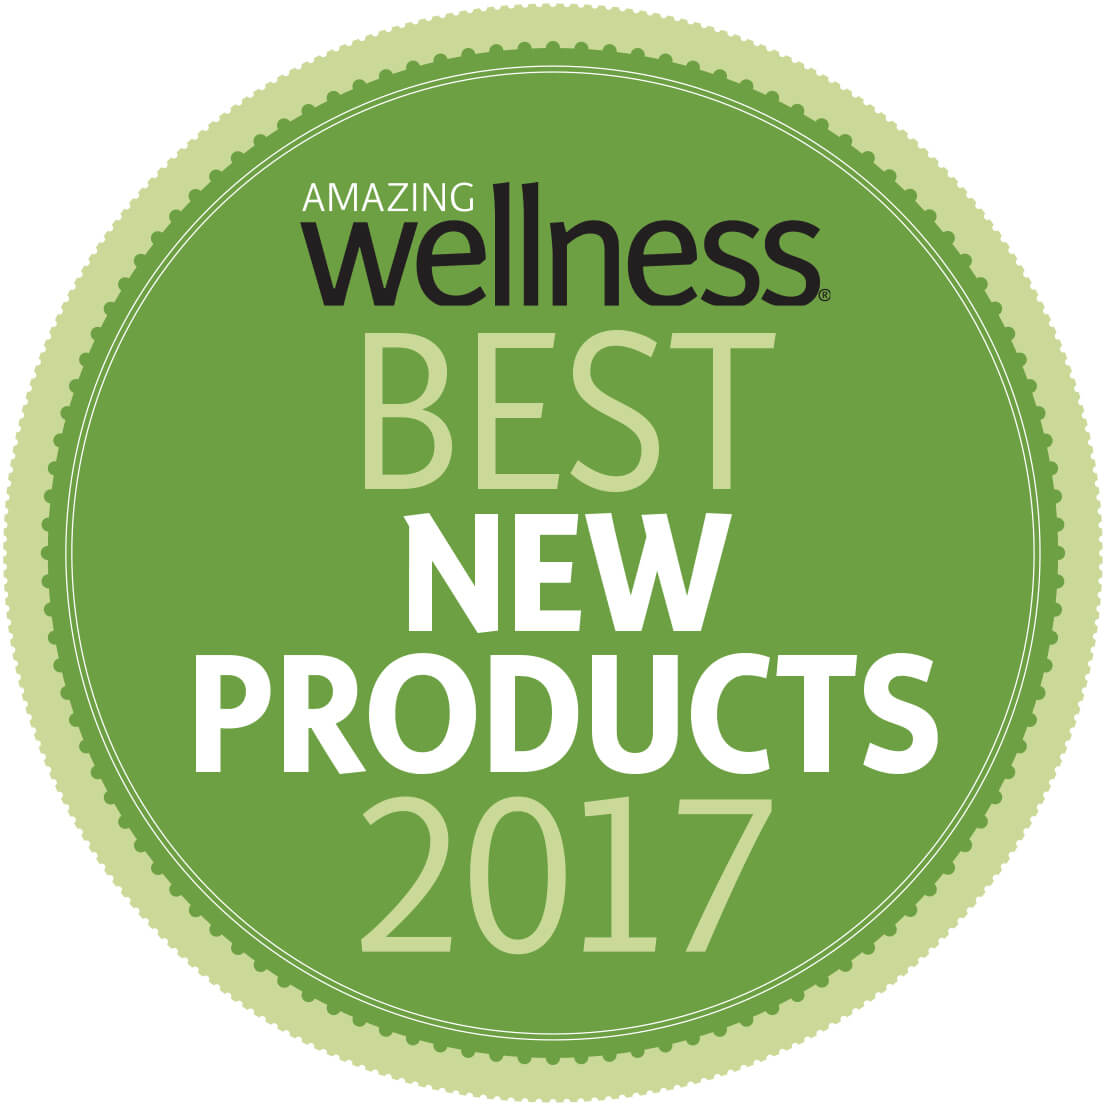 Wellness Best New Products 2017